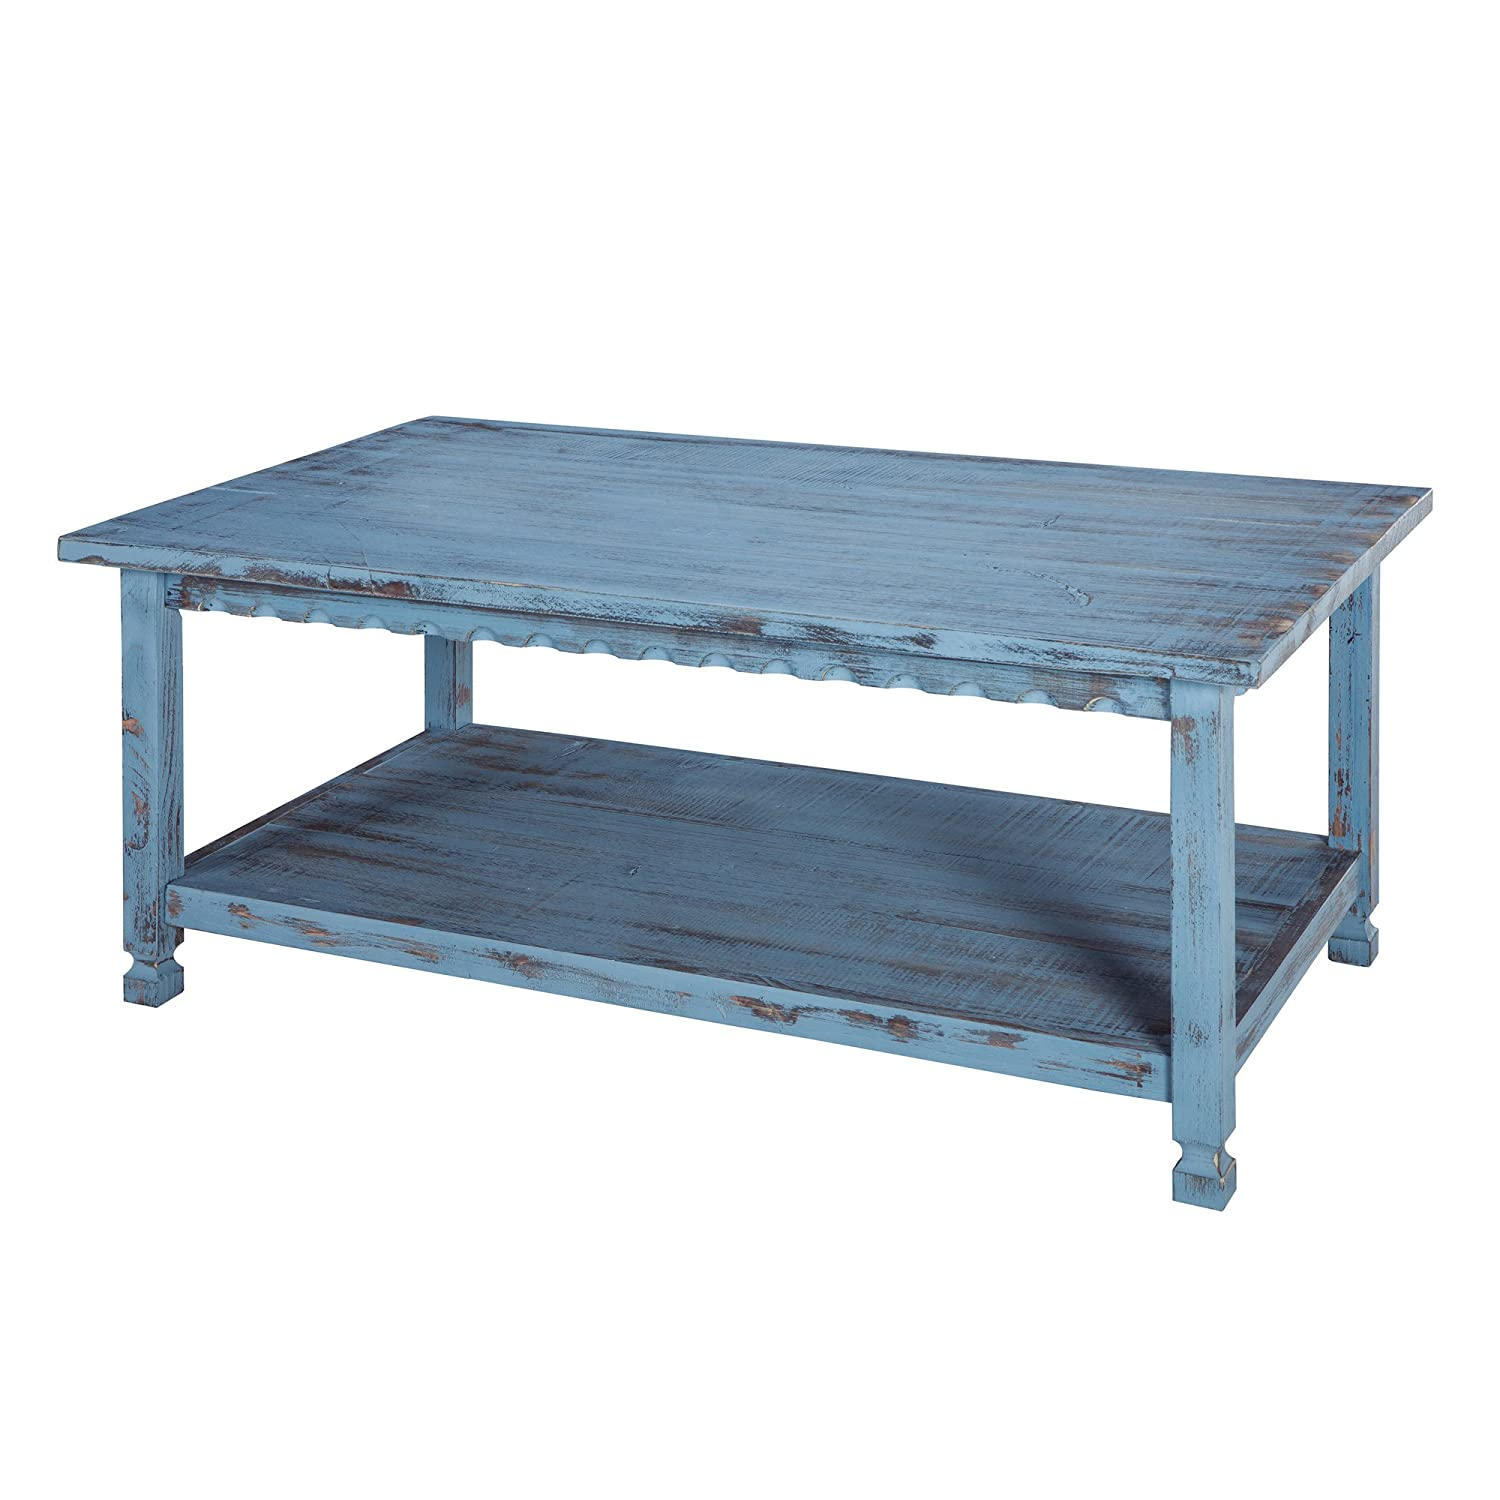 Merveilleux Amazon.com: Alaterre ACCA11BA Rustic Coffee Table, Blue Antique: Kitchen U0026  Dining